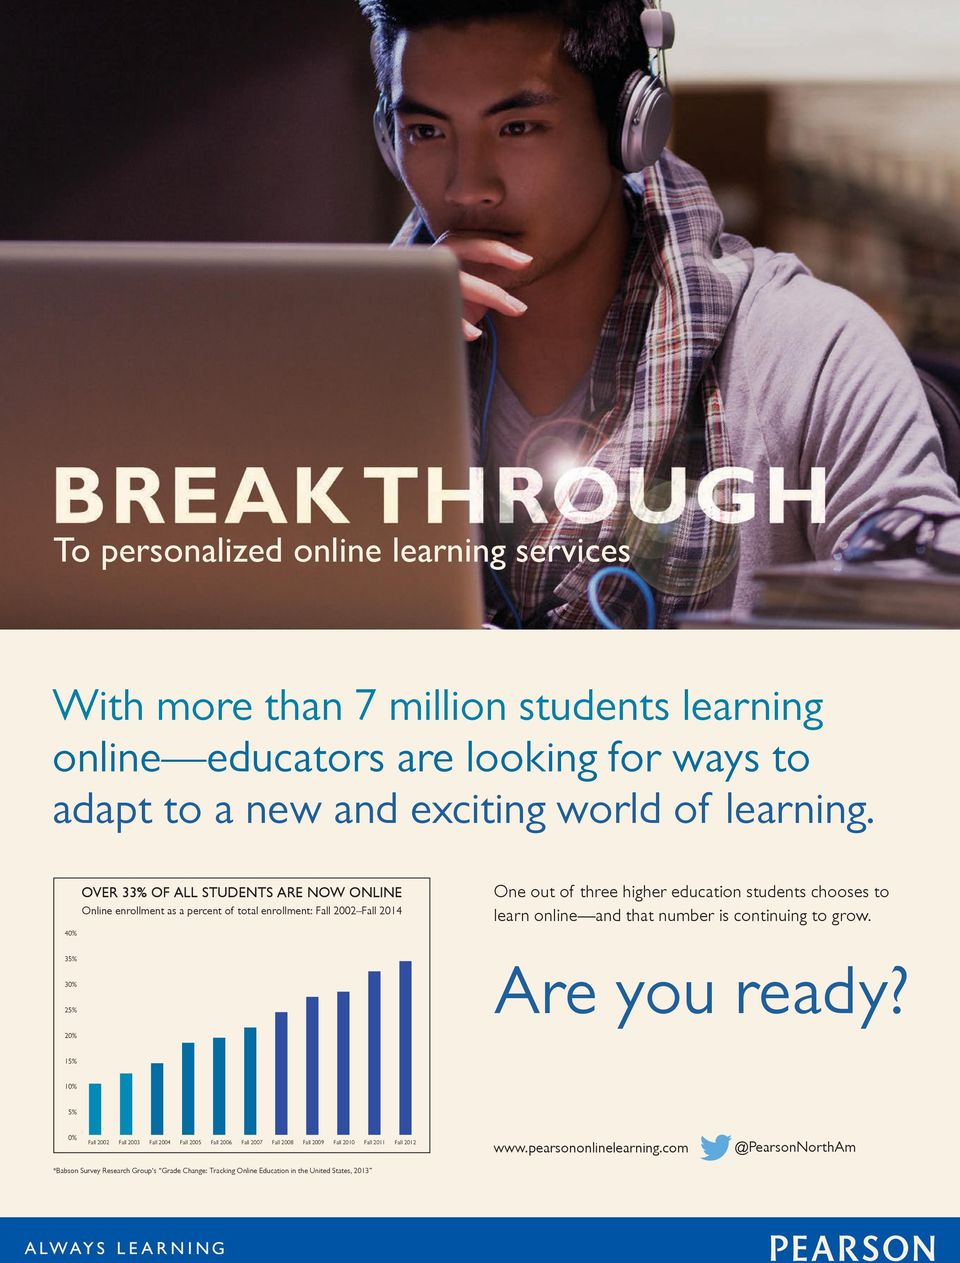 chooses to learn online and that number is continuing to grow. Are you ready?